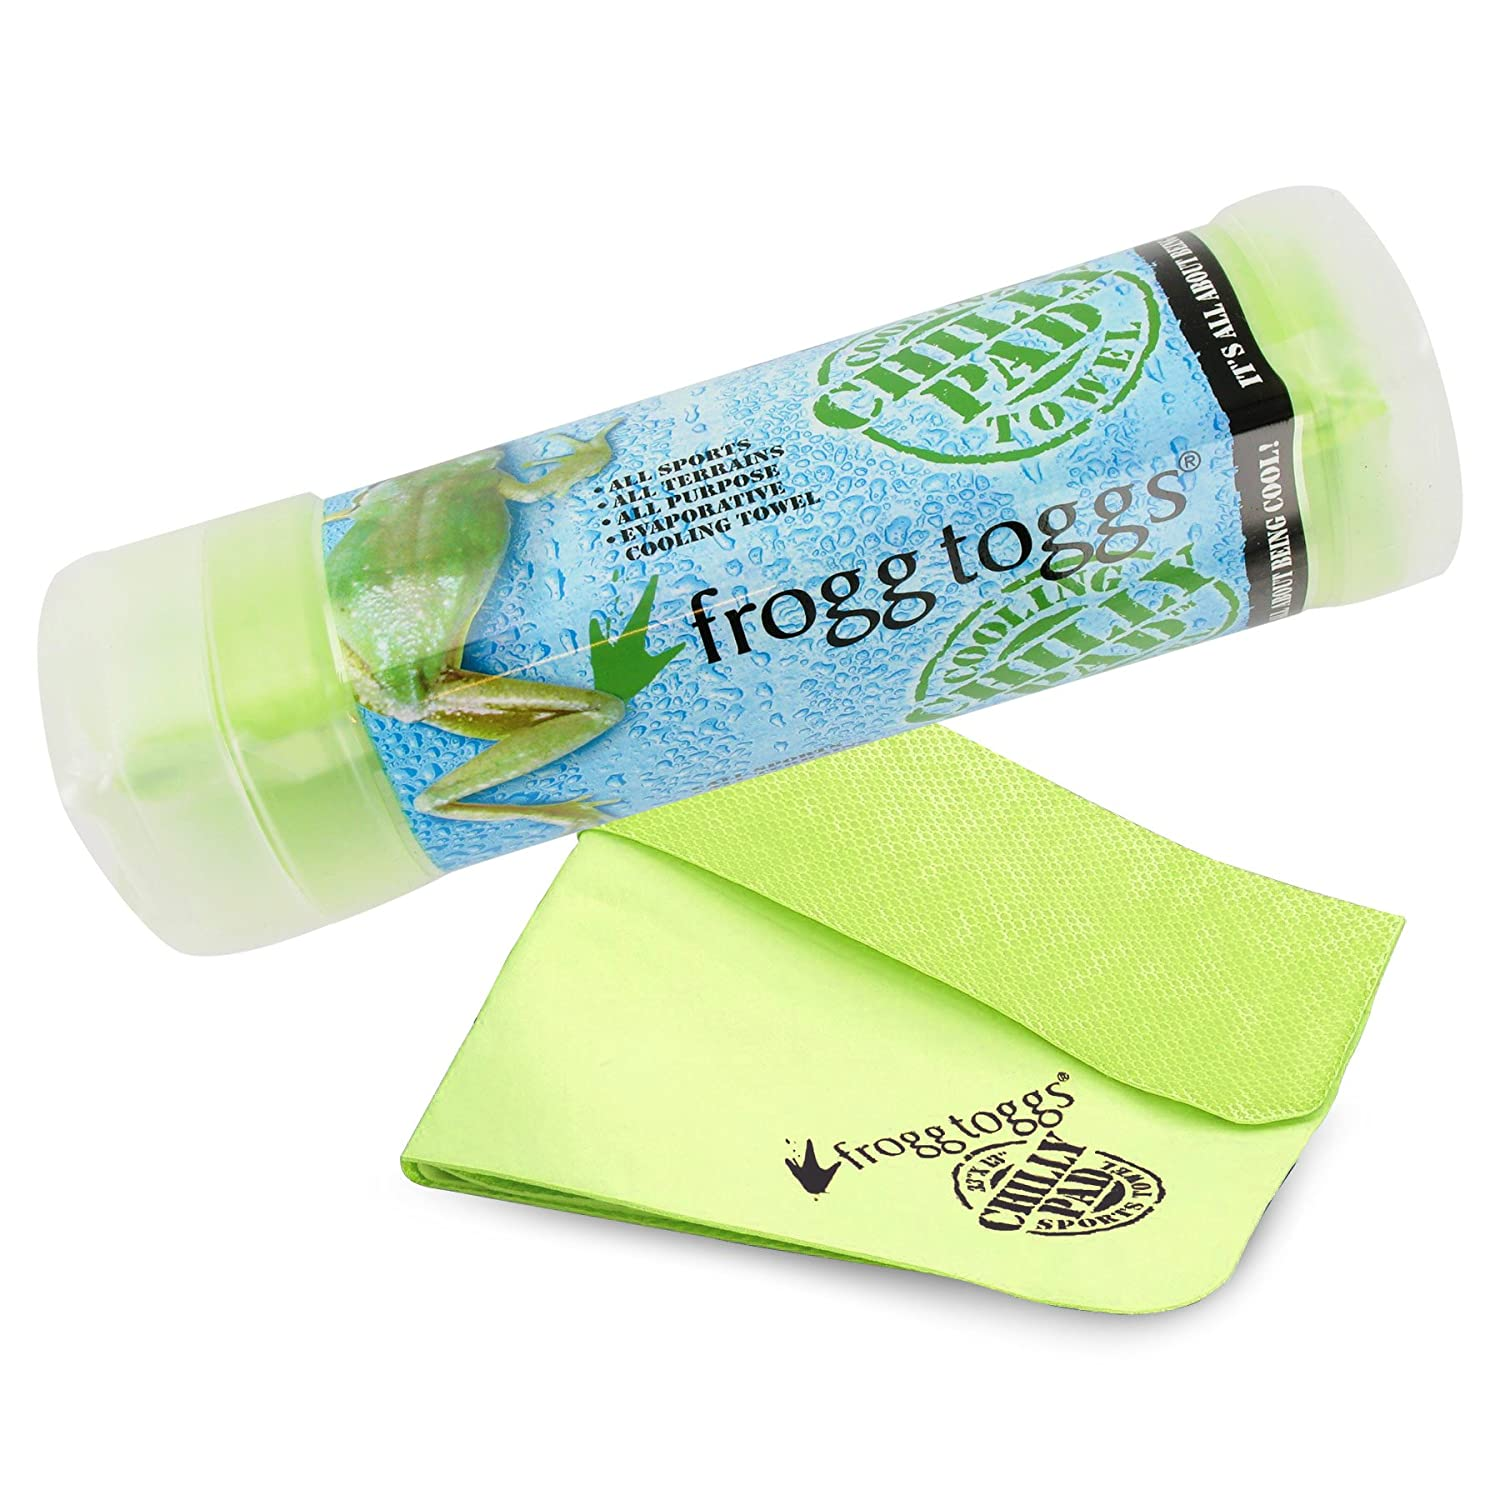 "Frogg Toggs 647484919239 Chilly Pad Cooling Towel, 32.5"" Length x 12.25"" Width, Lime Green"